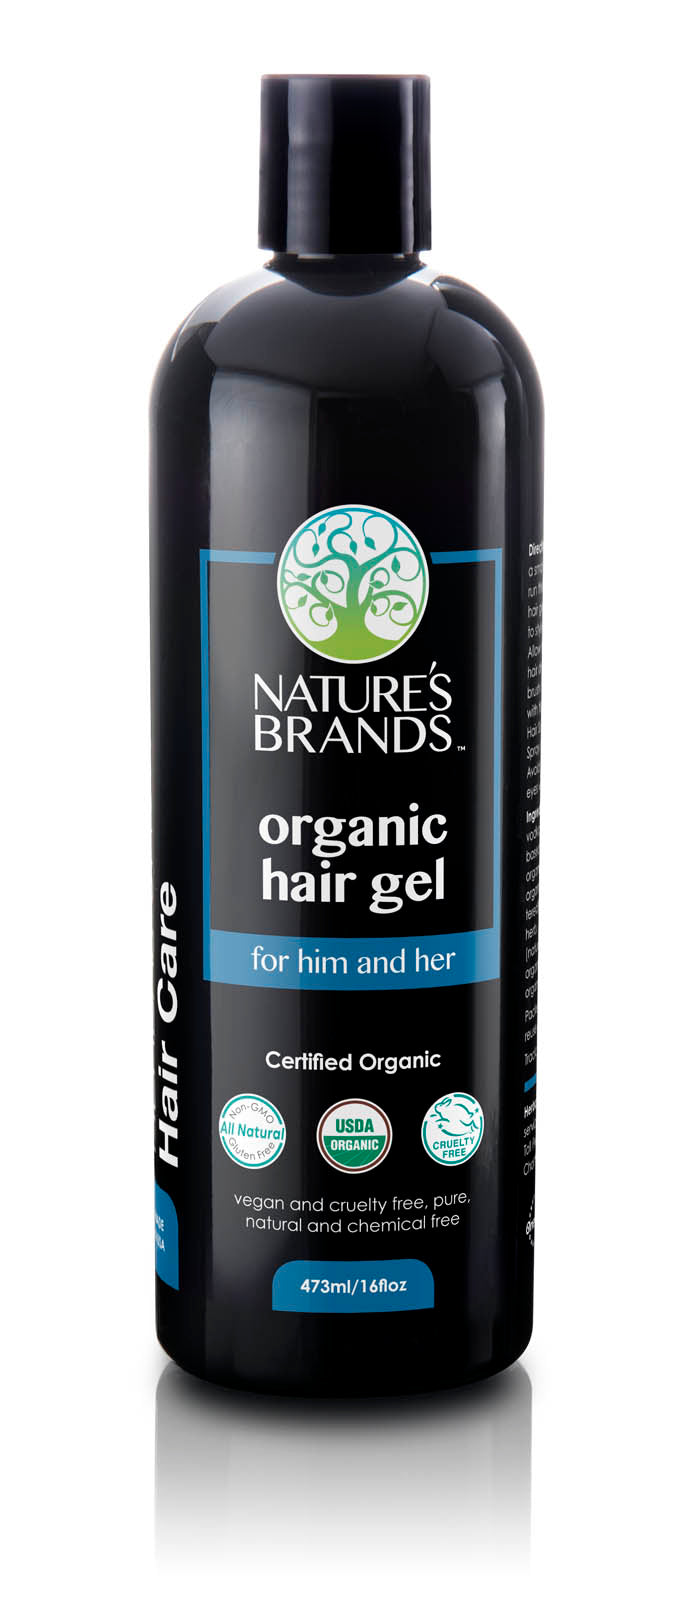 Herbal Choice Mari Organic Hair Gel - Herbal Choice Mari Organic Hair Gel - Herbal Choice Mari Organic Hair Gel